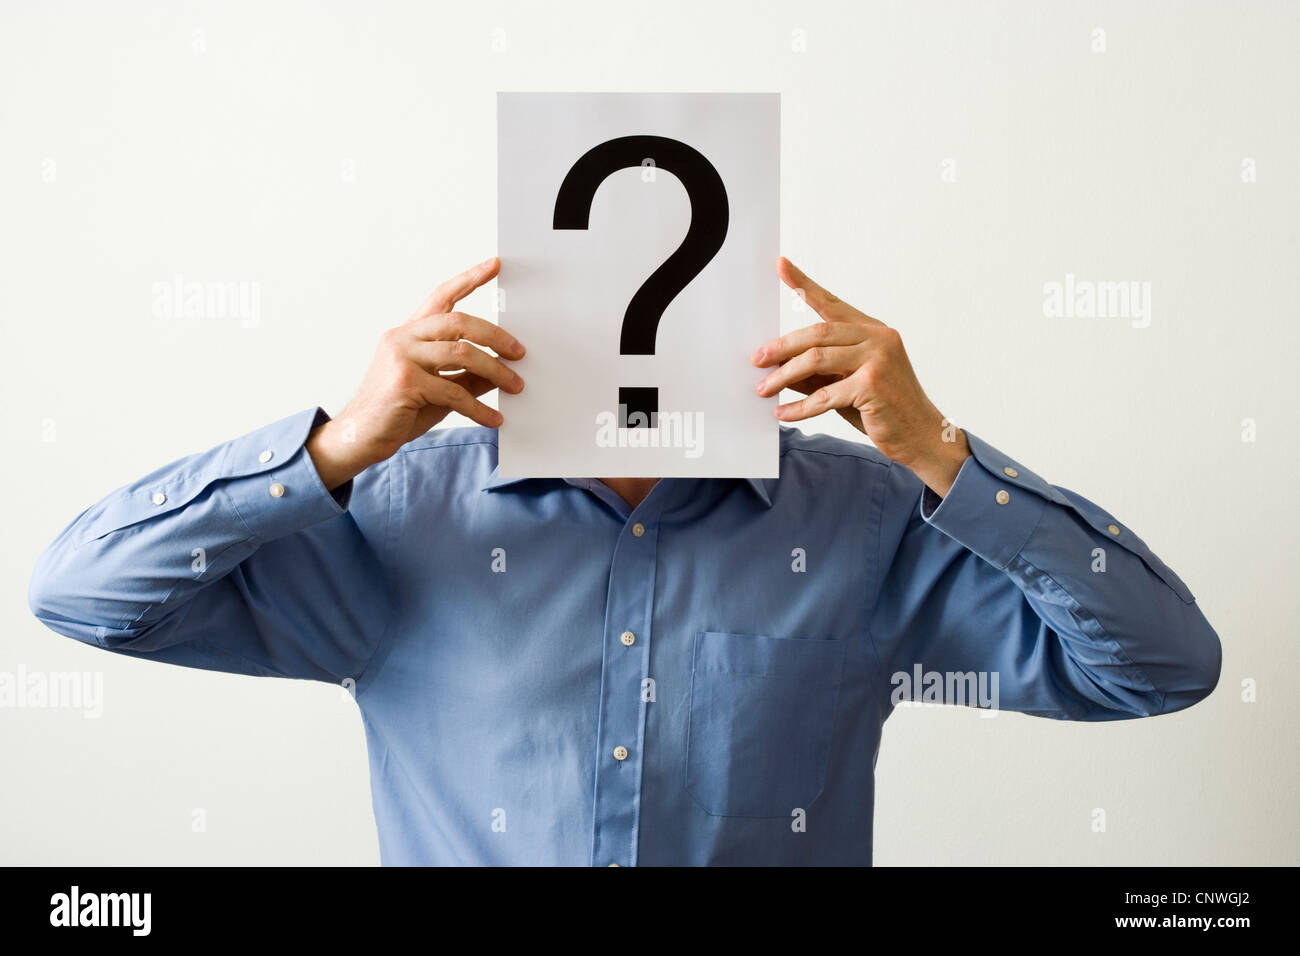 Man with question mark covering face. Stock Photo